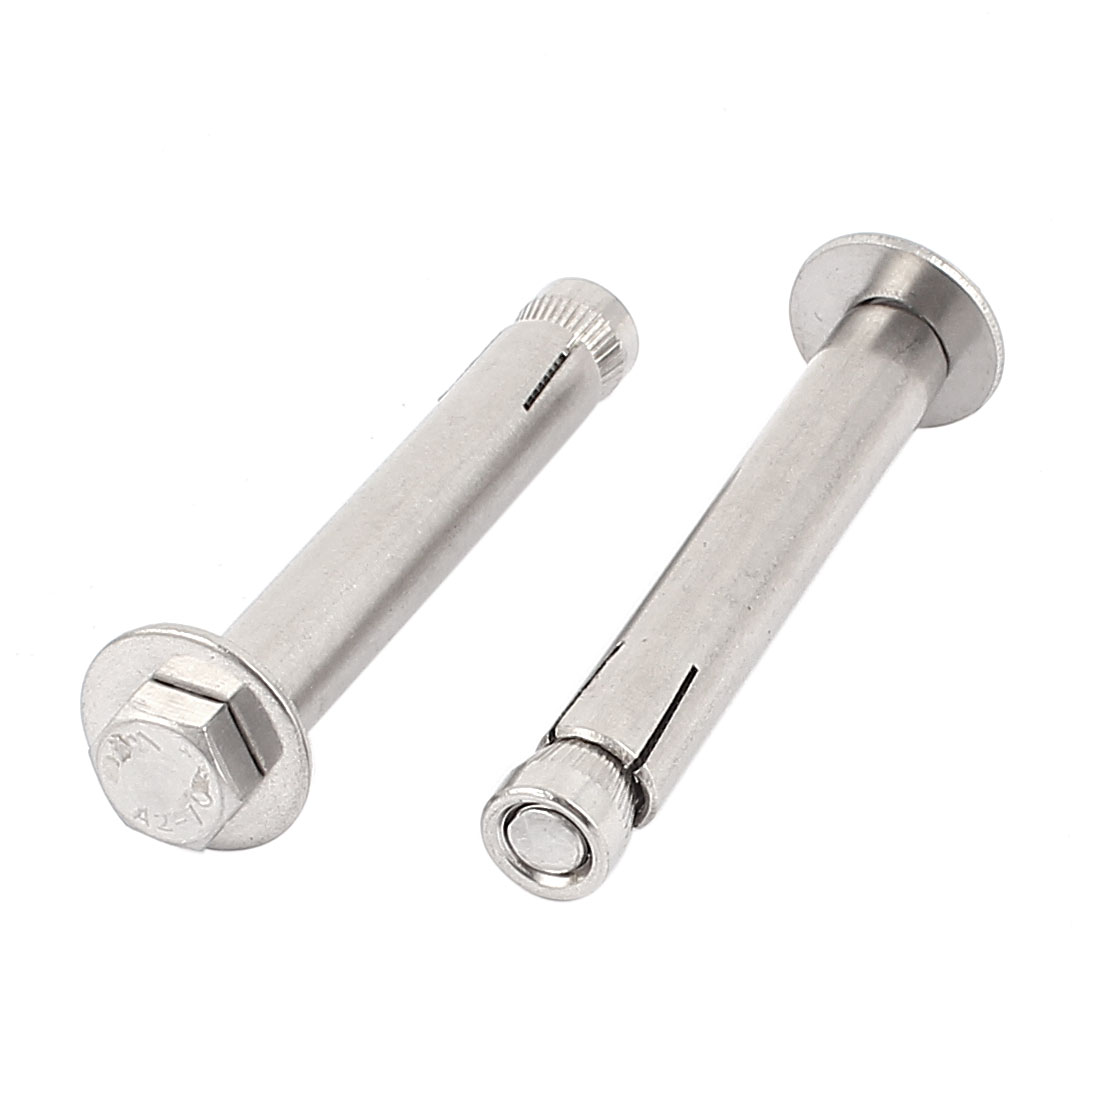 M8x80mm 304 Stainless Steel Building Expansion Anchor Bolts 2pcs